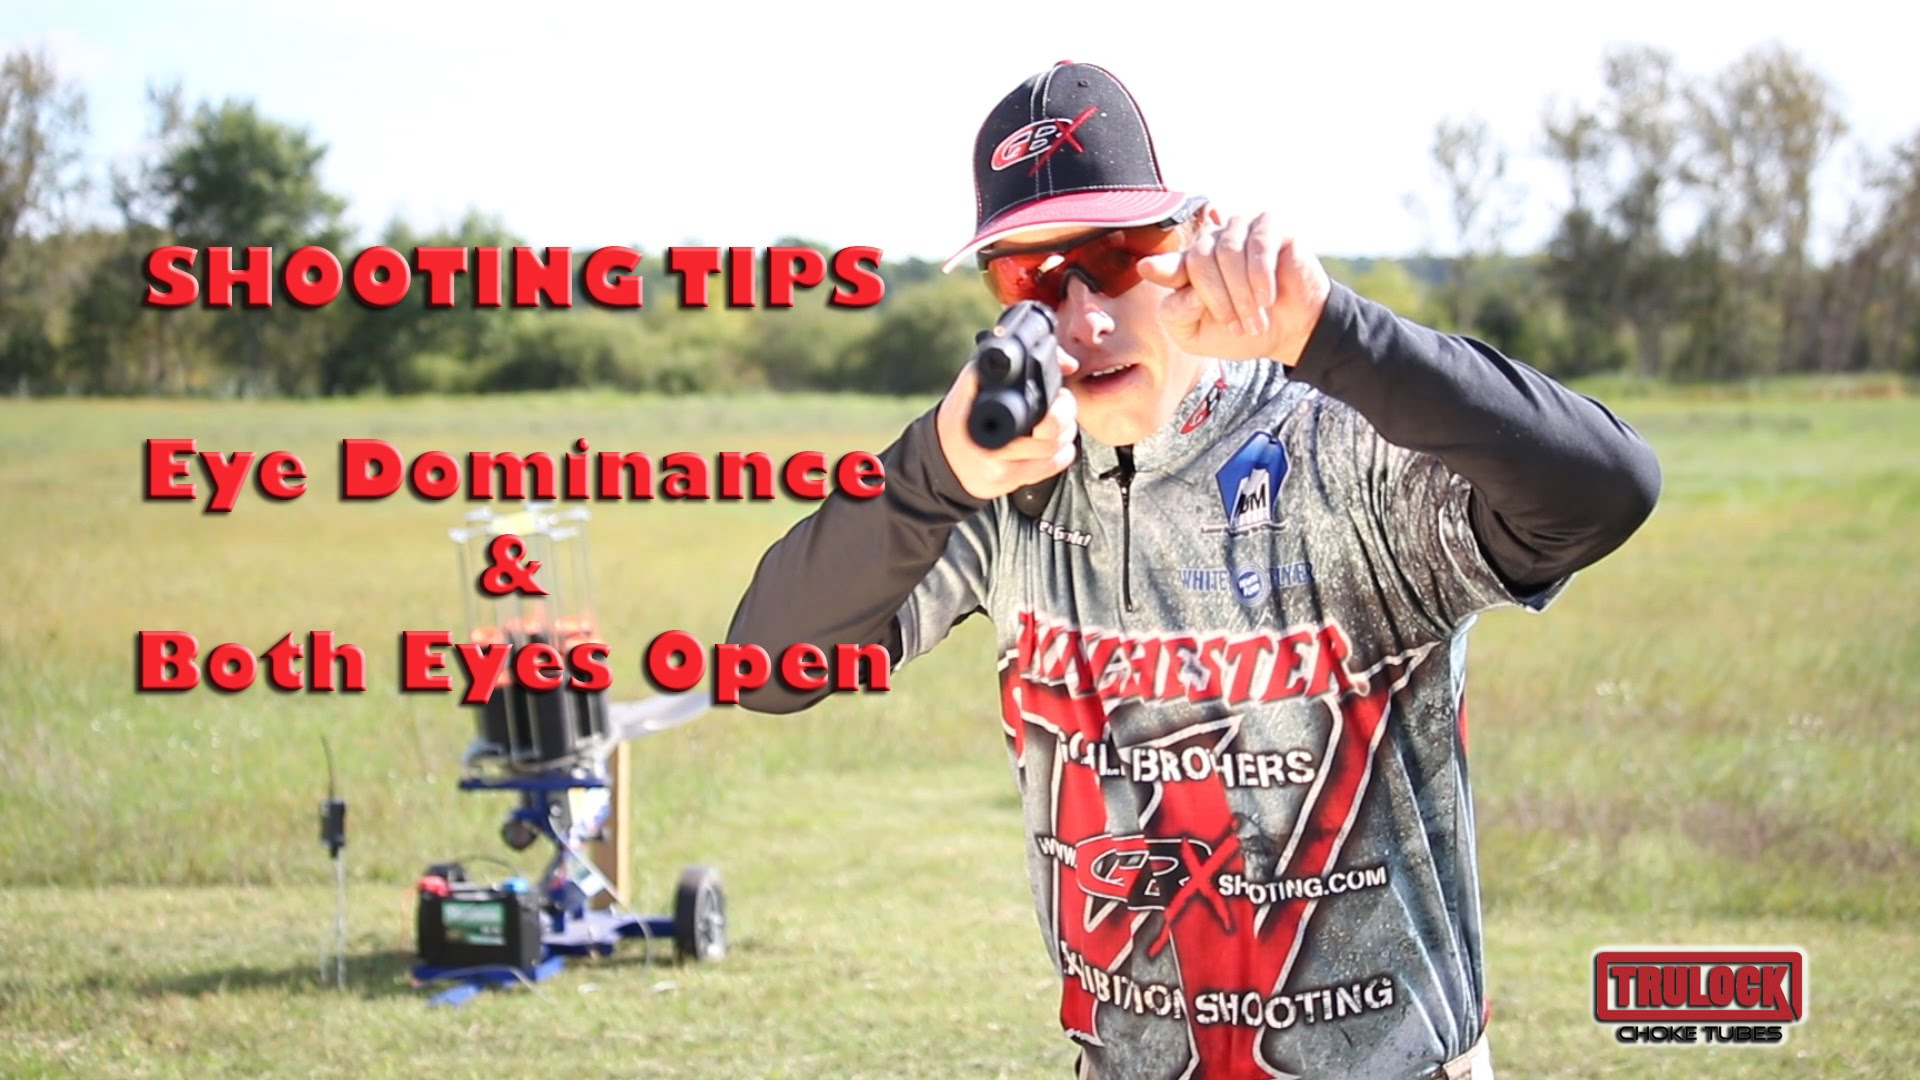 Tips for Better Wing & Clay Shooting - Eye Dominance & Both Eyes Open